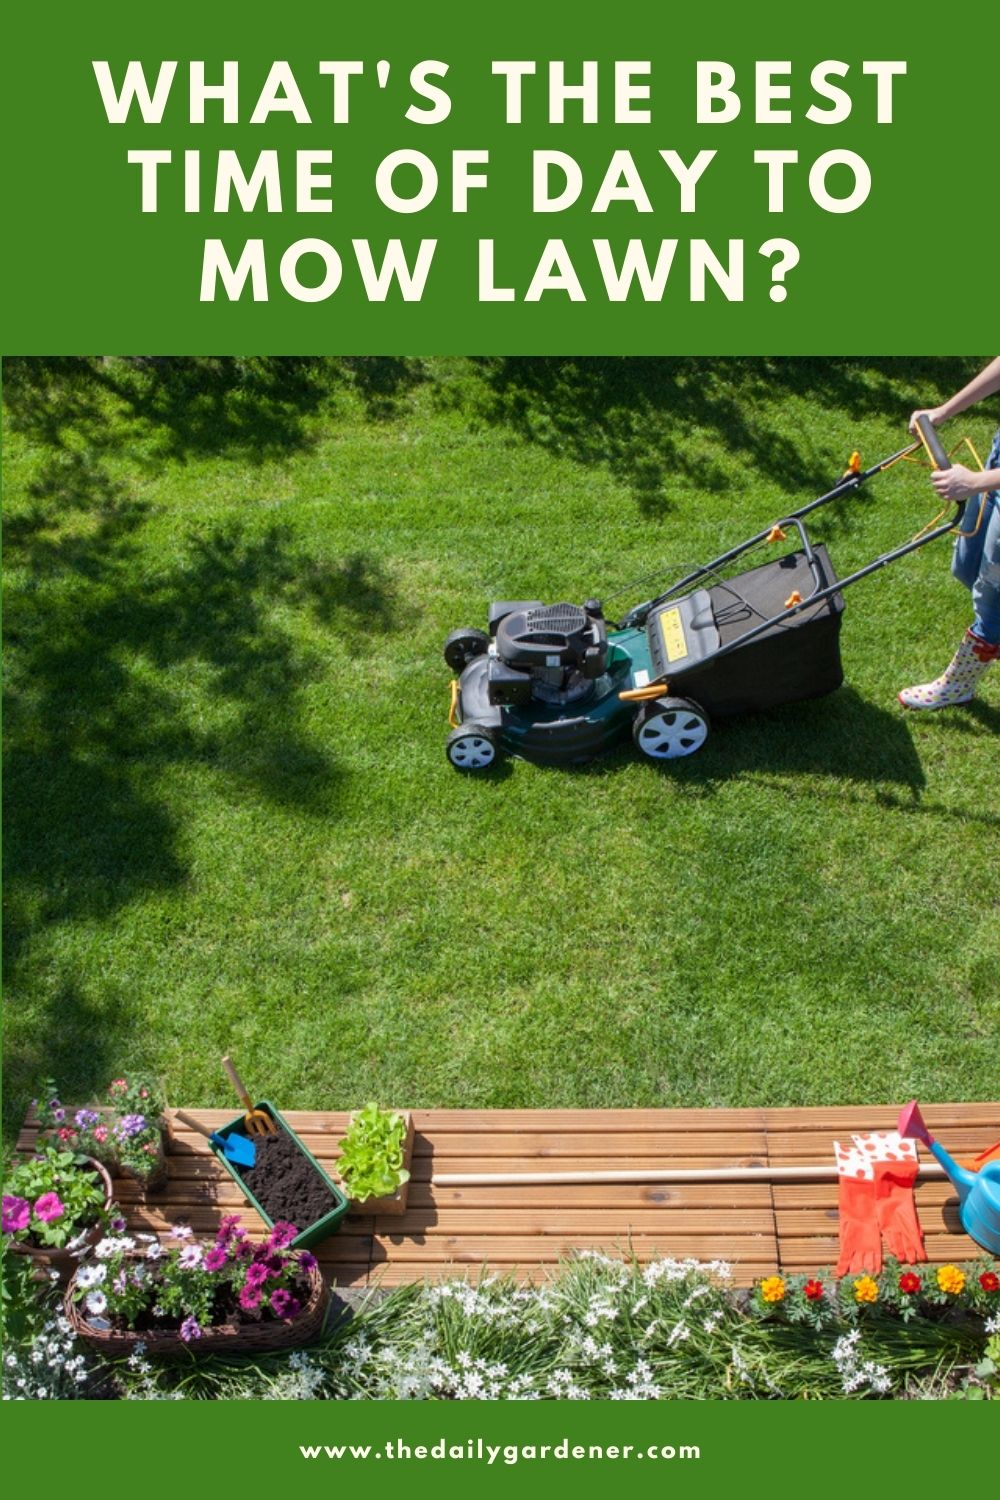 What's the Best Time of Day to Mow Lawn 2